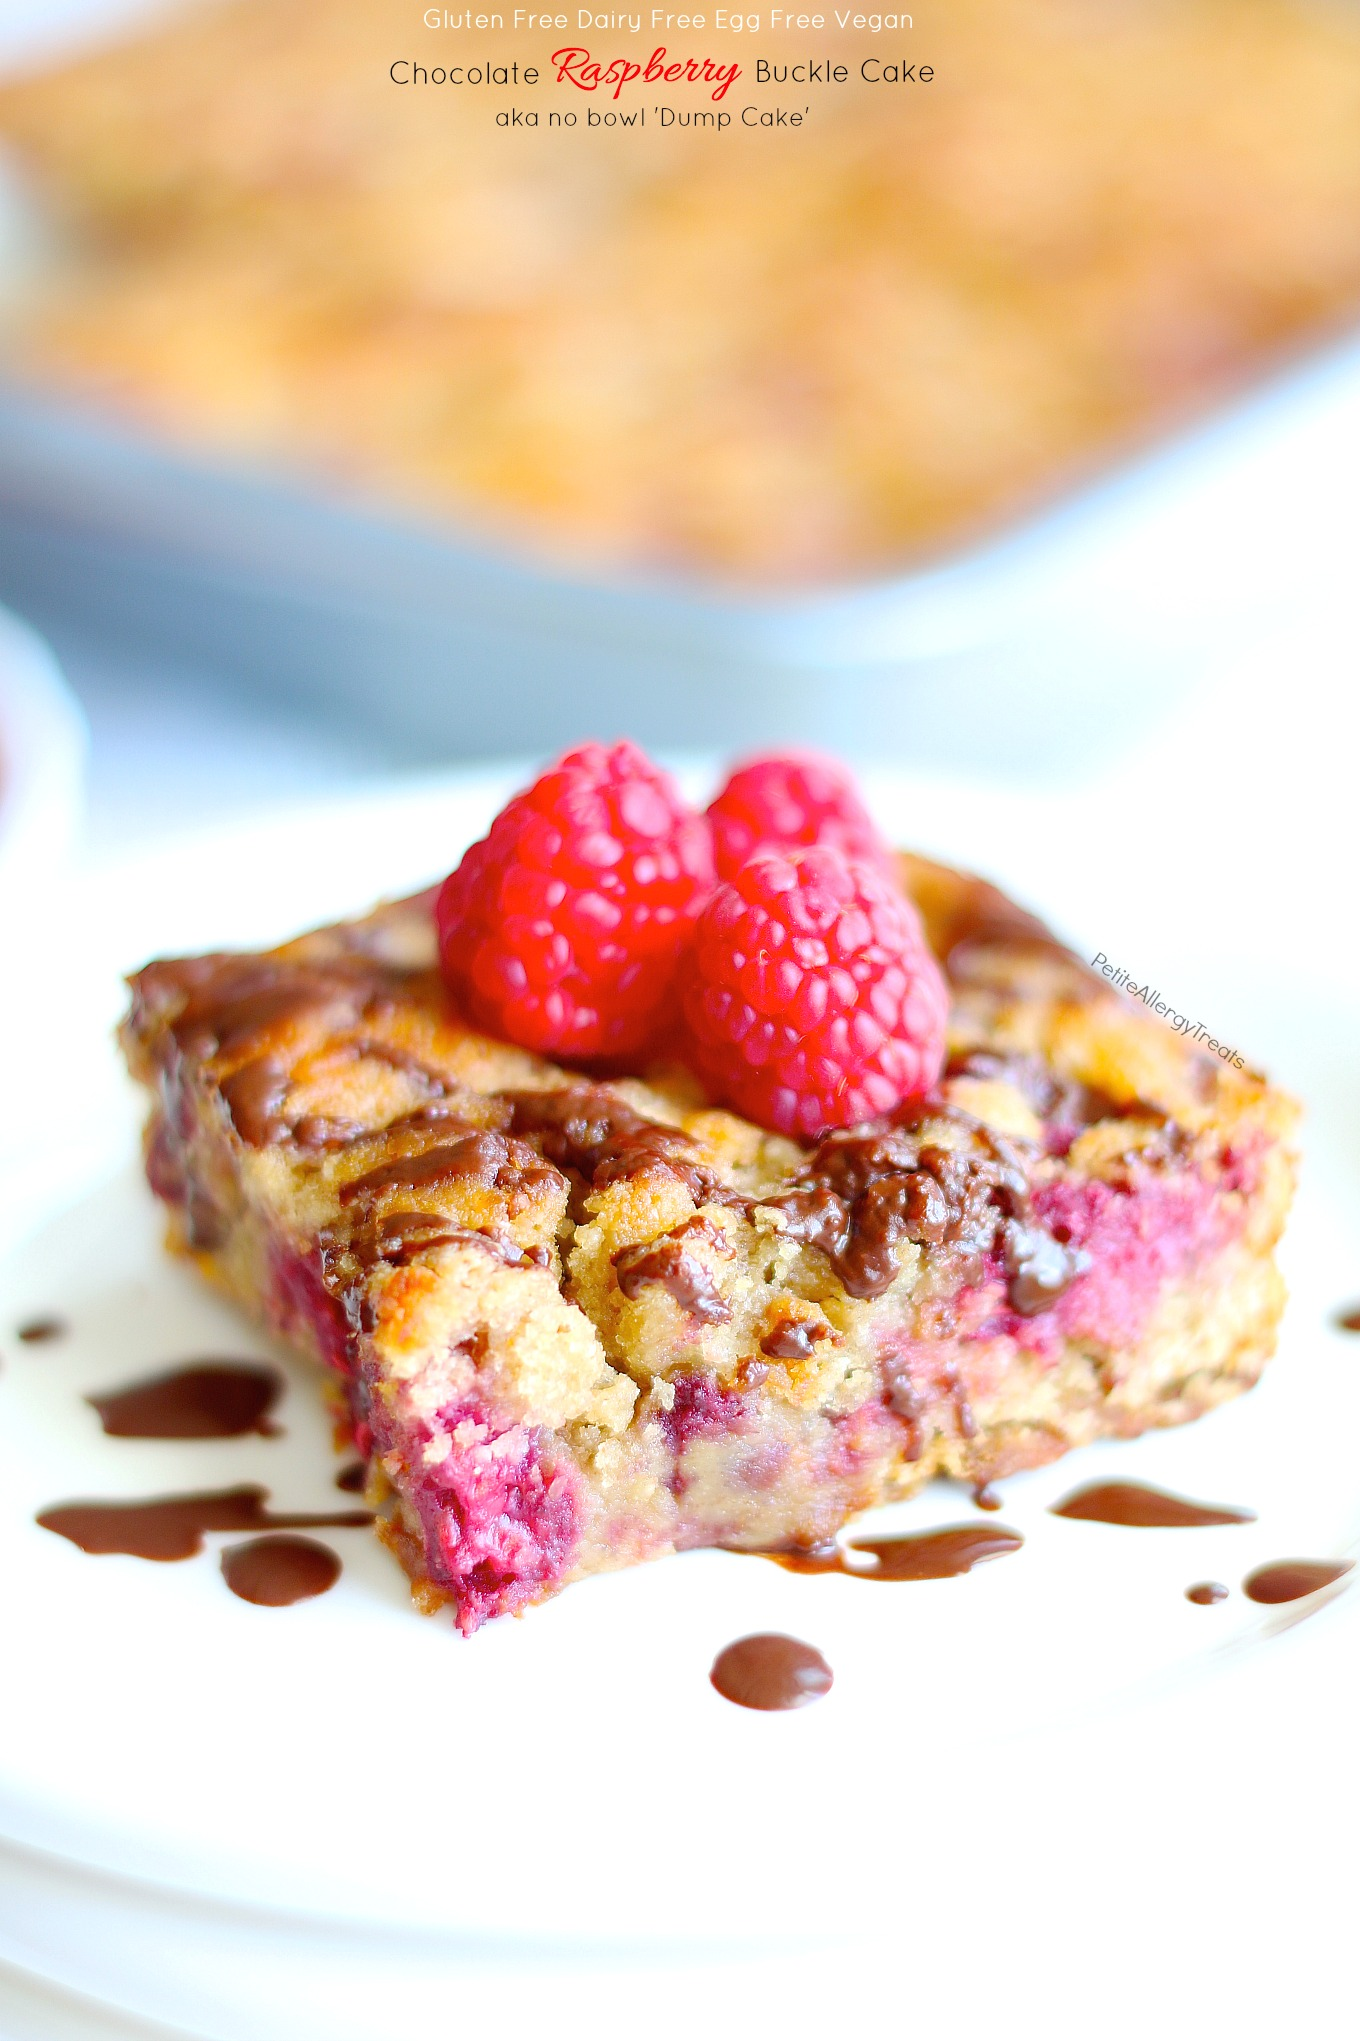 Gluten Free Raspberry Buckle Dump Cake (dairy free vegan) Recipe- Healthier no bowl breakfast cake containing real fruit, protein and food allergy friendly.